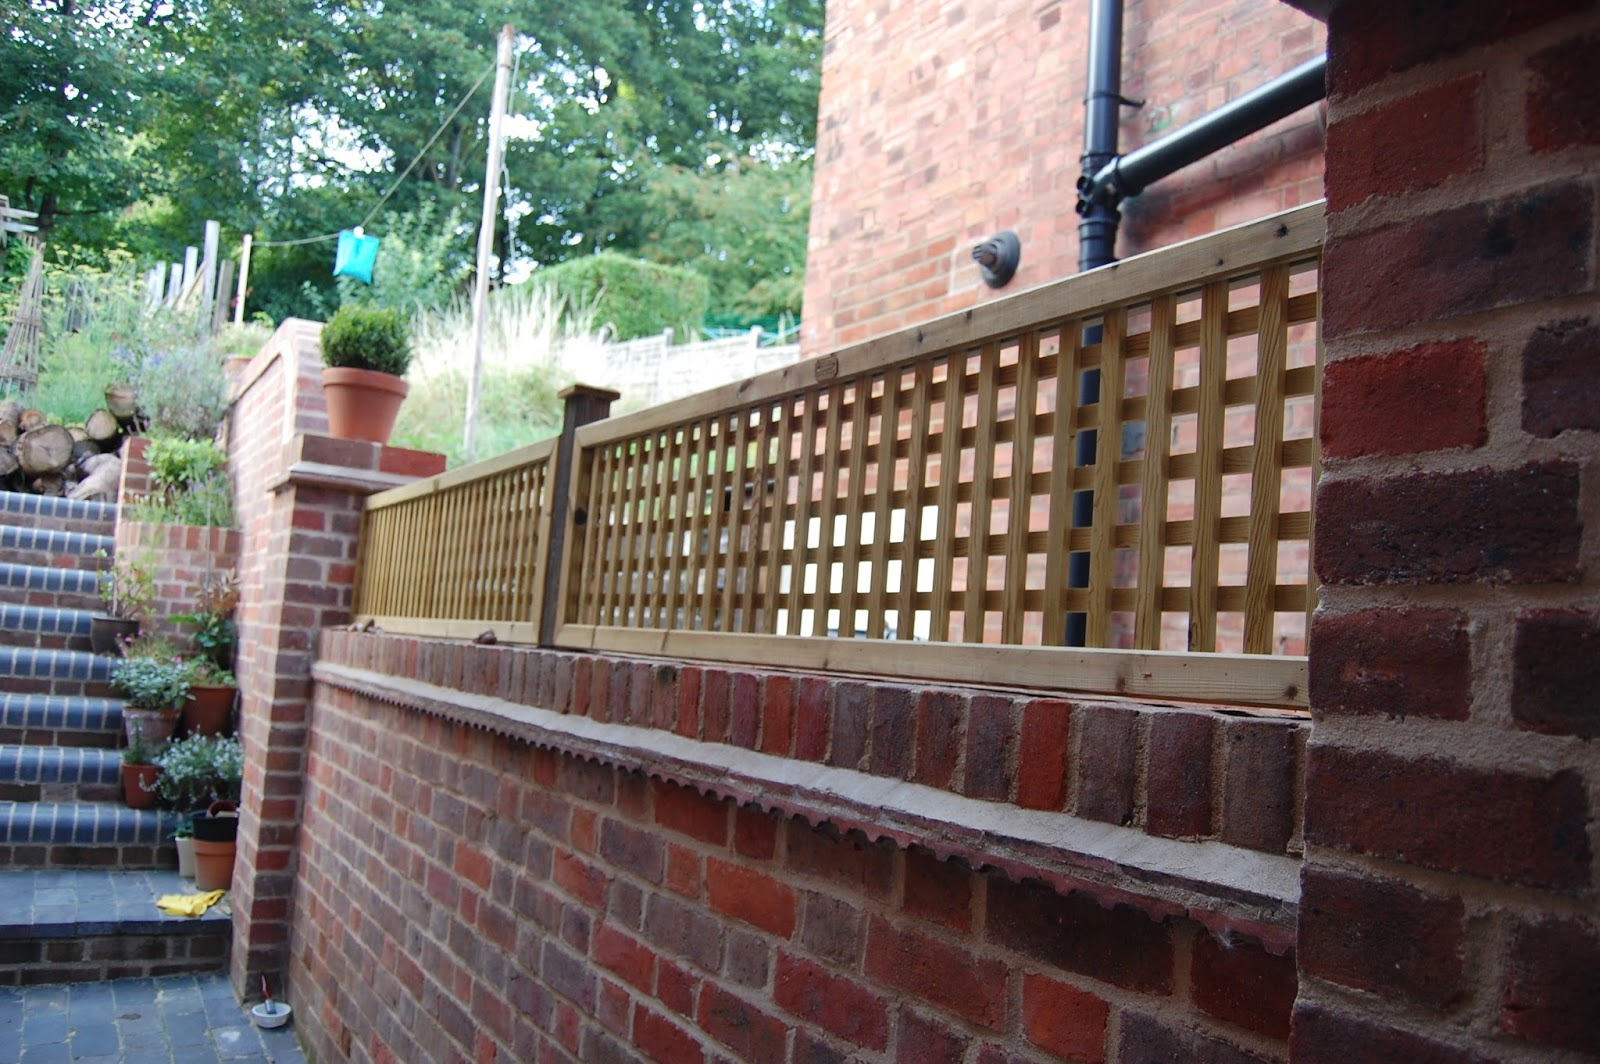 Lattice Trellis Fixed On Brick Wall